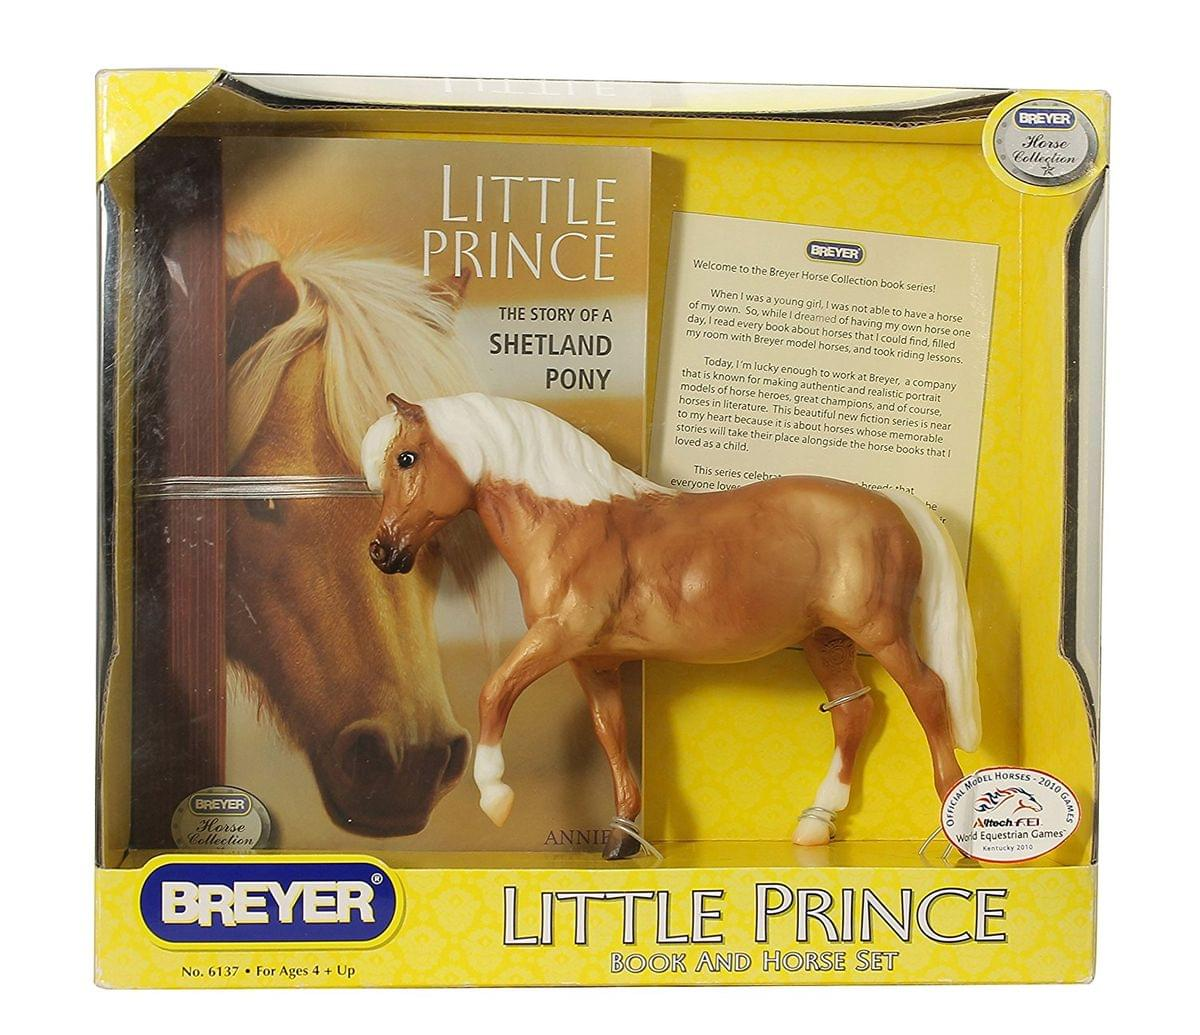 Breyer Classics Little Prince Book And Horse Toy Set 1 12 Scale Walmart Com Walmart Com